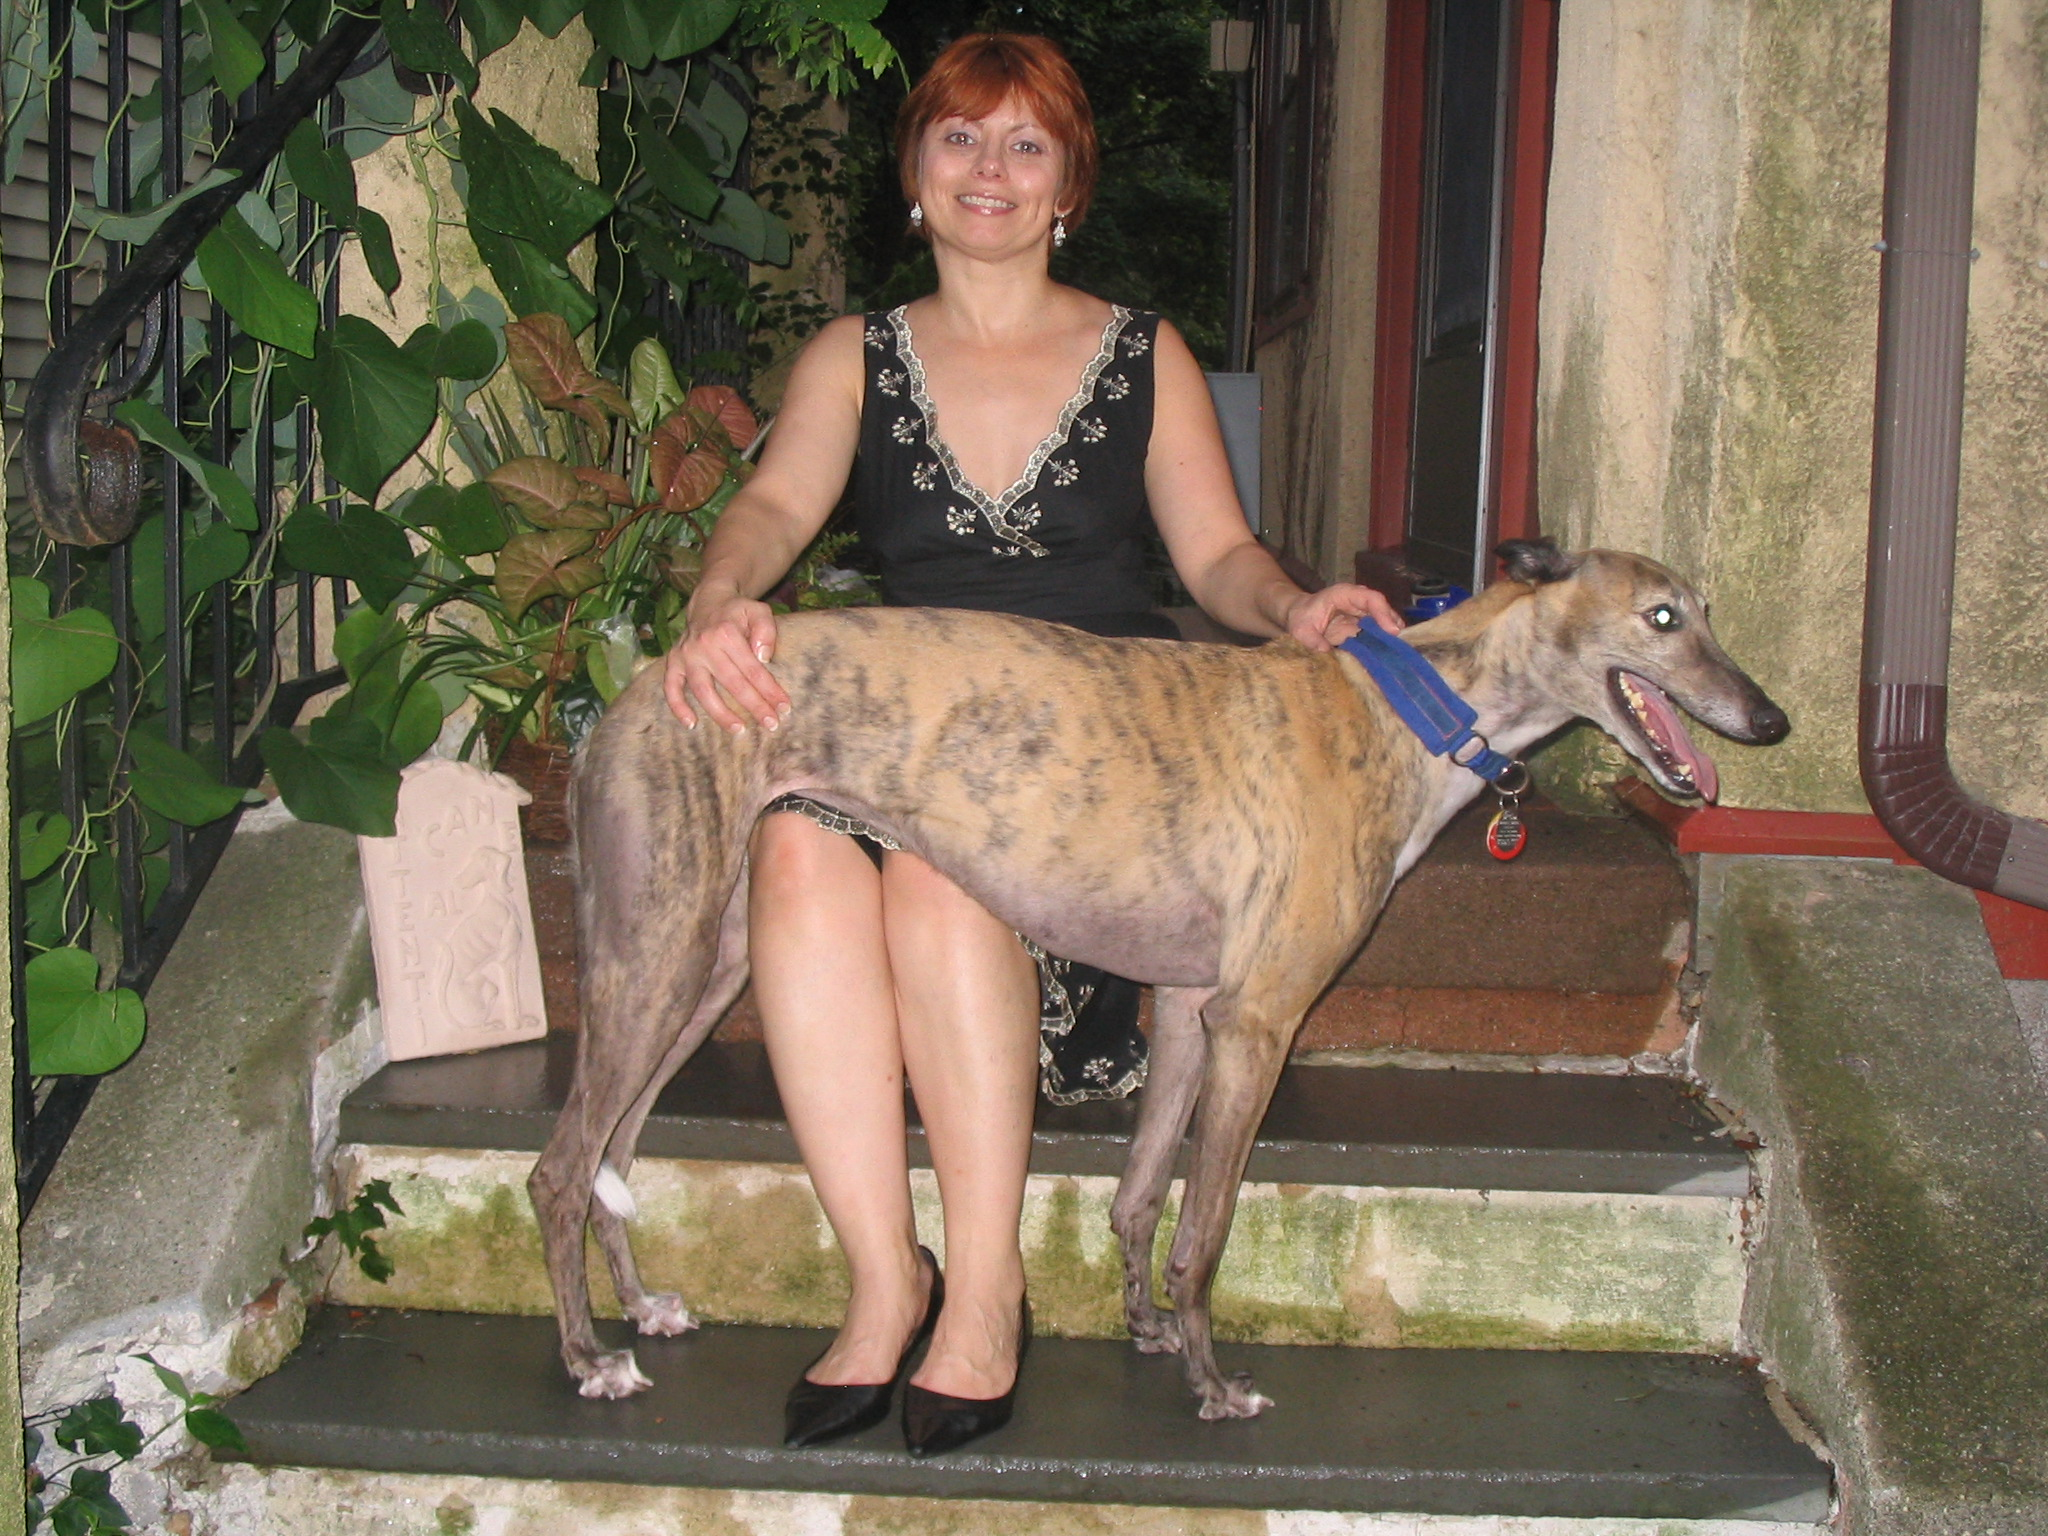 The author, Christine, with her greyhound Zoe